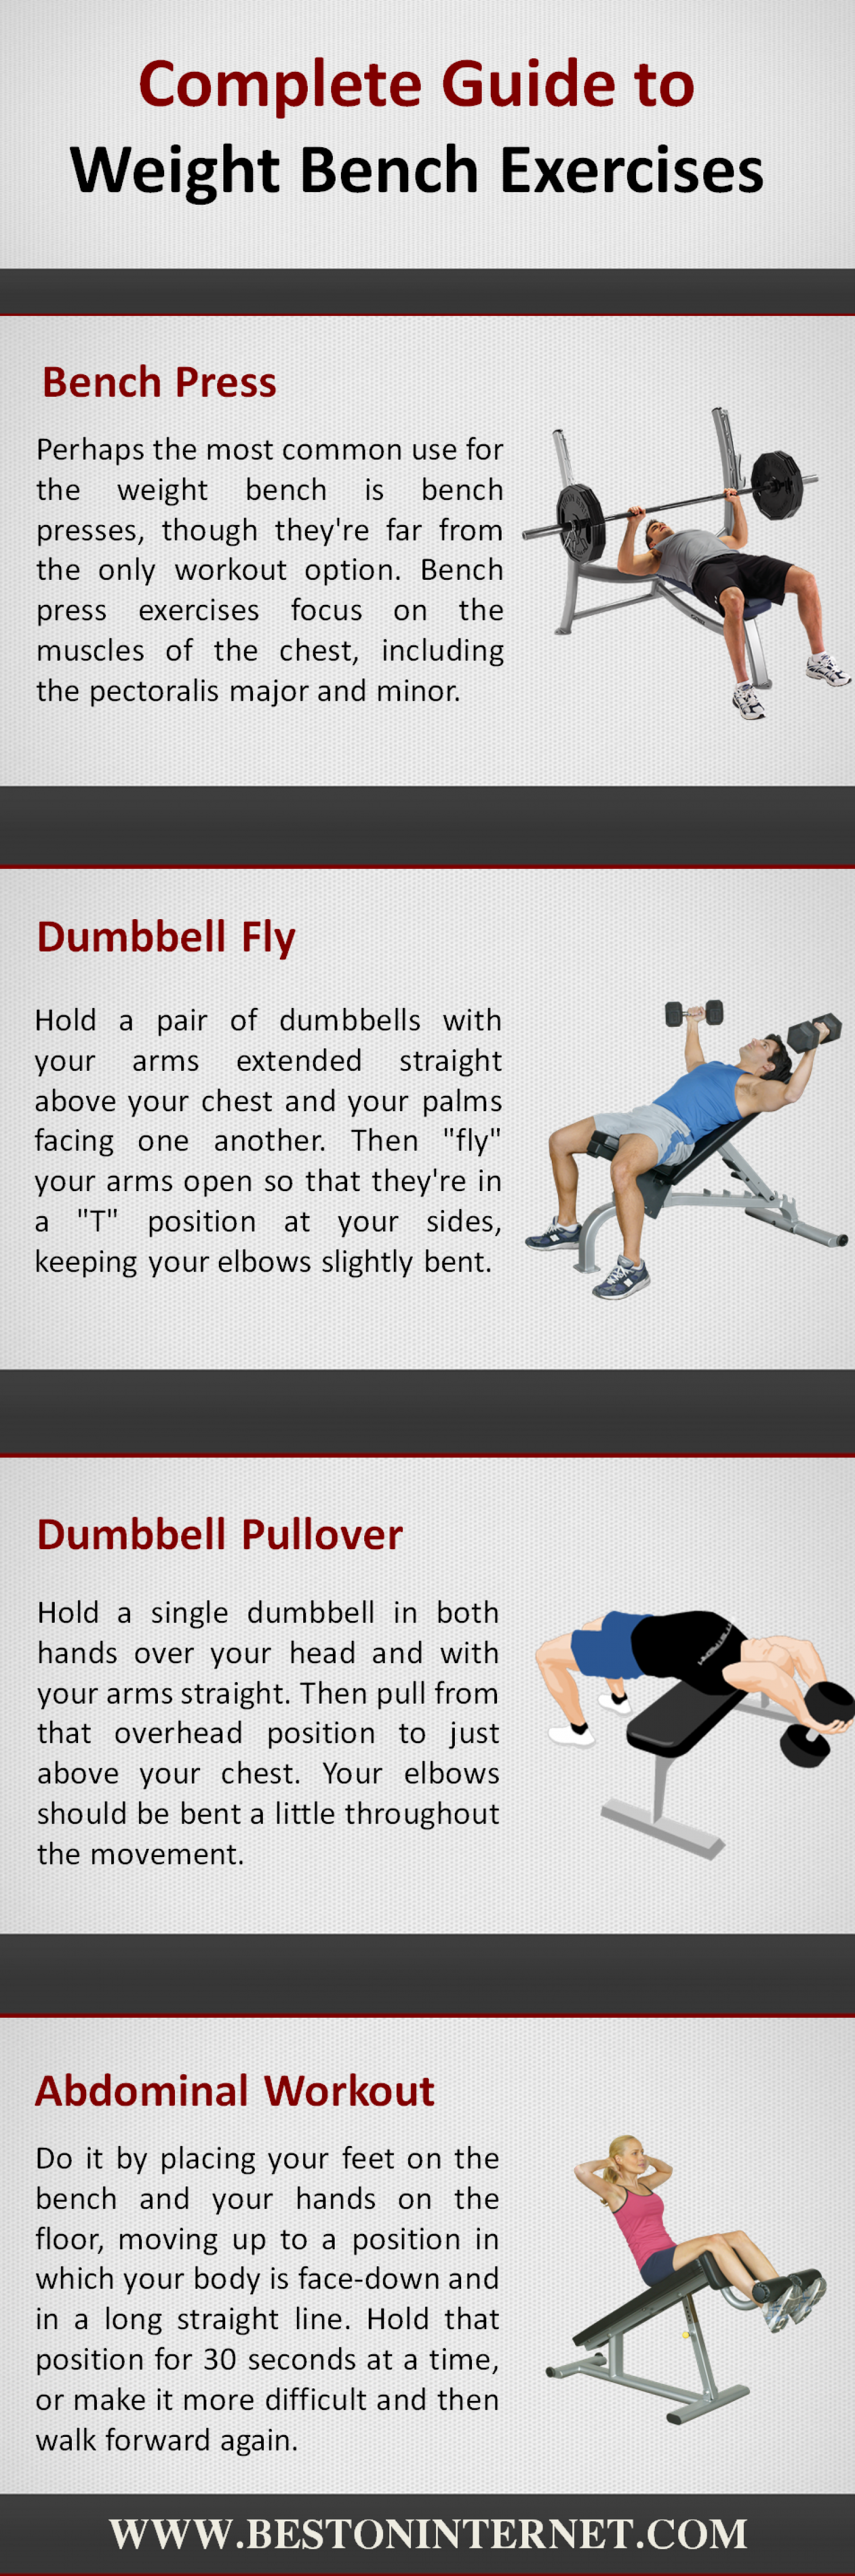 Complete Guide to Weight Bench Exercises Infographic